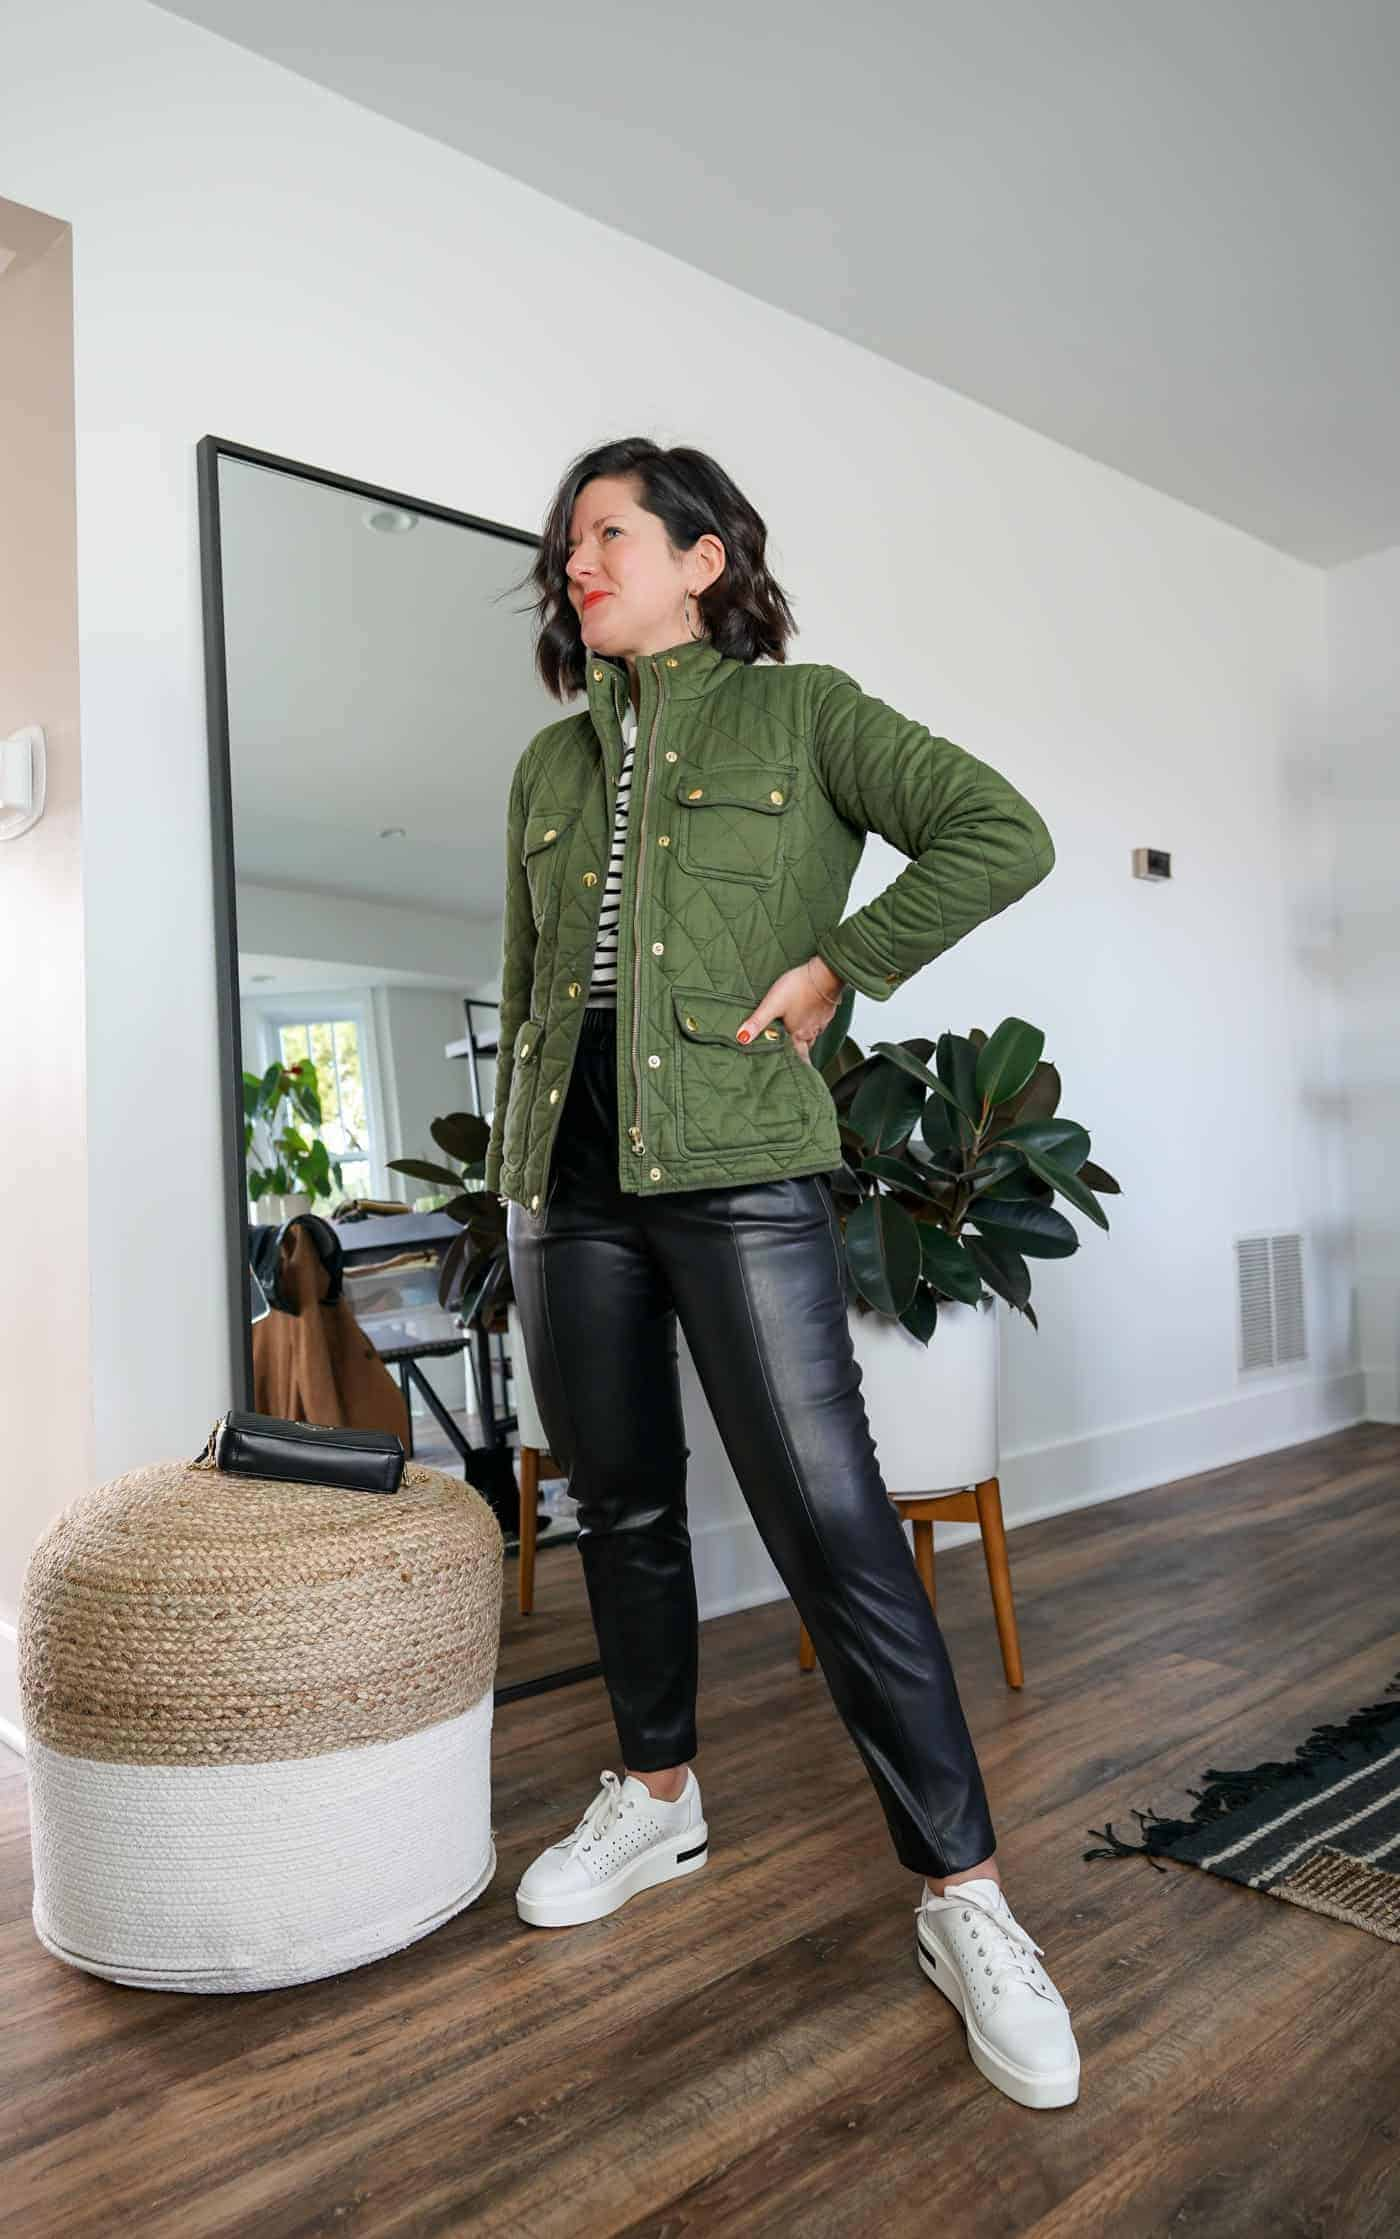 A Lily Love Affair wearing faux leather pants with white sneakers, a striped tee and green jacket